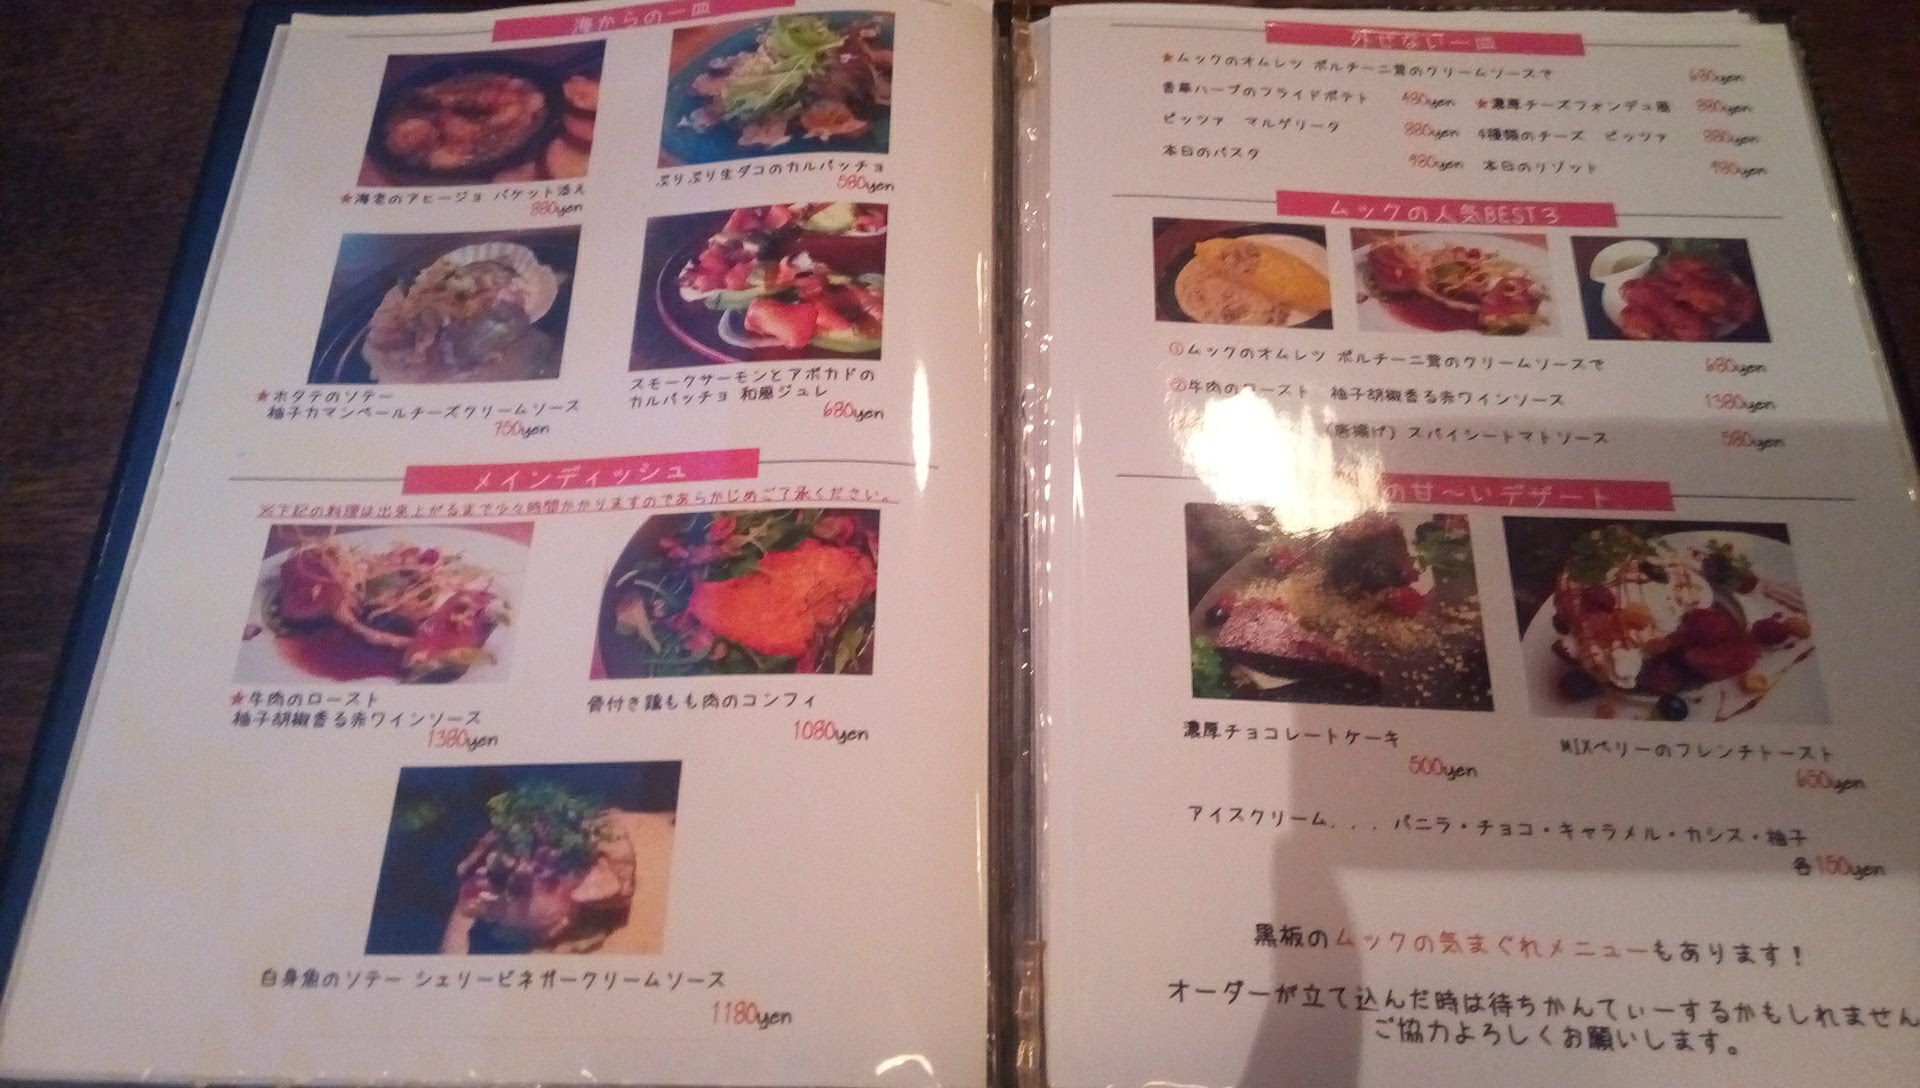 MUC food menu 2